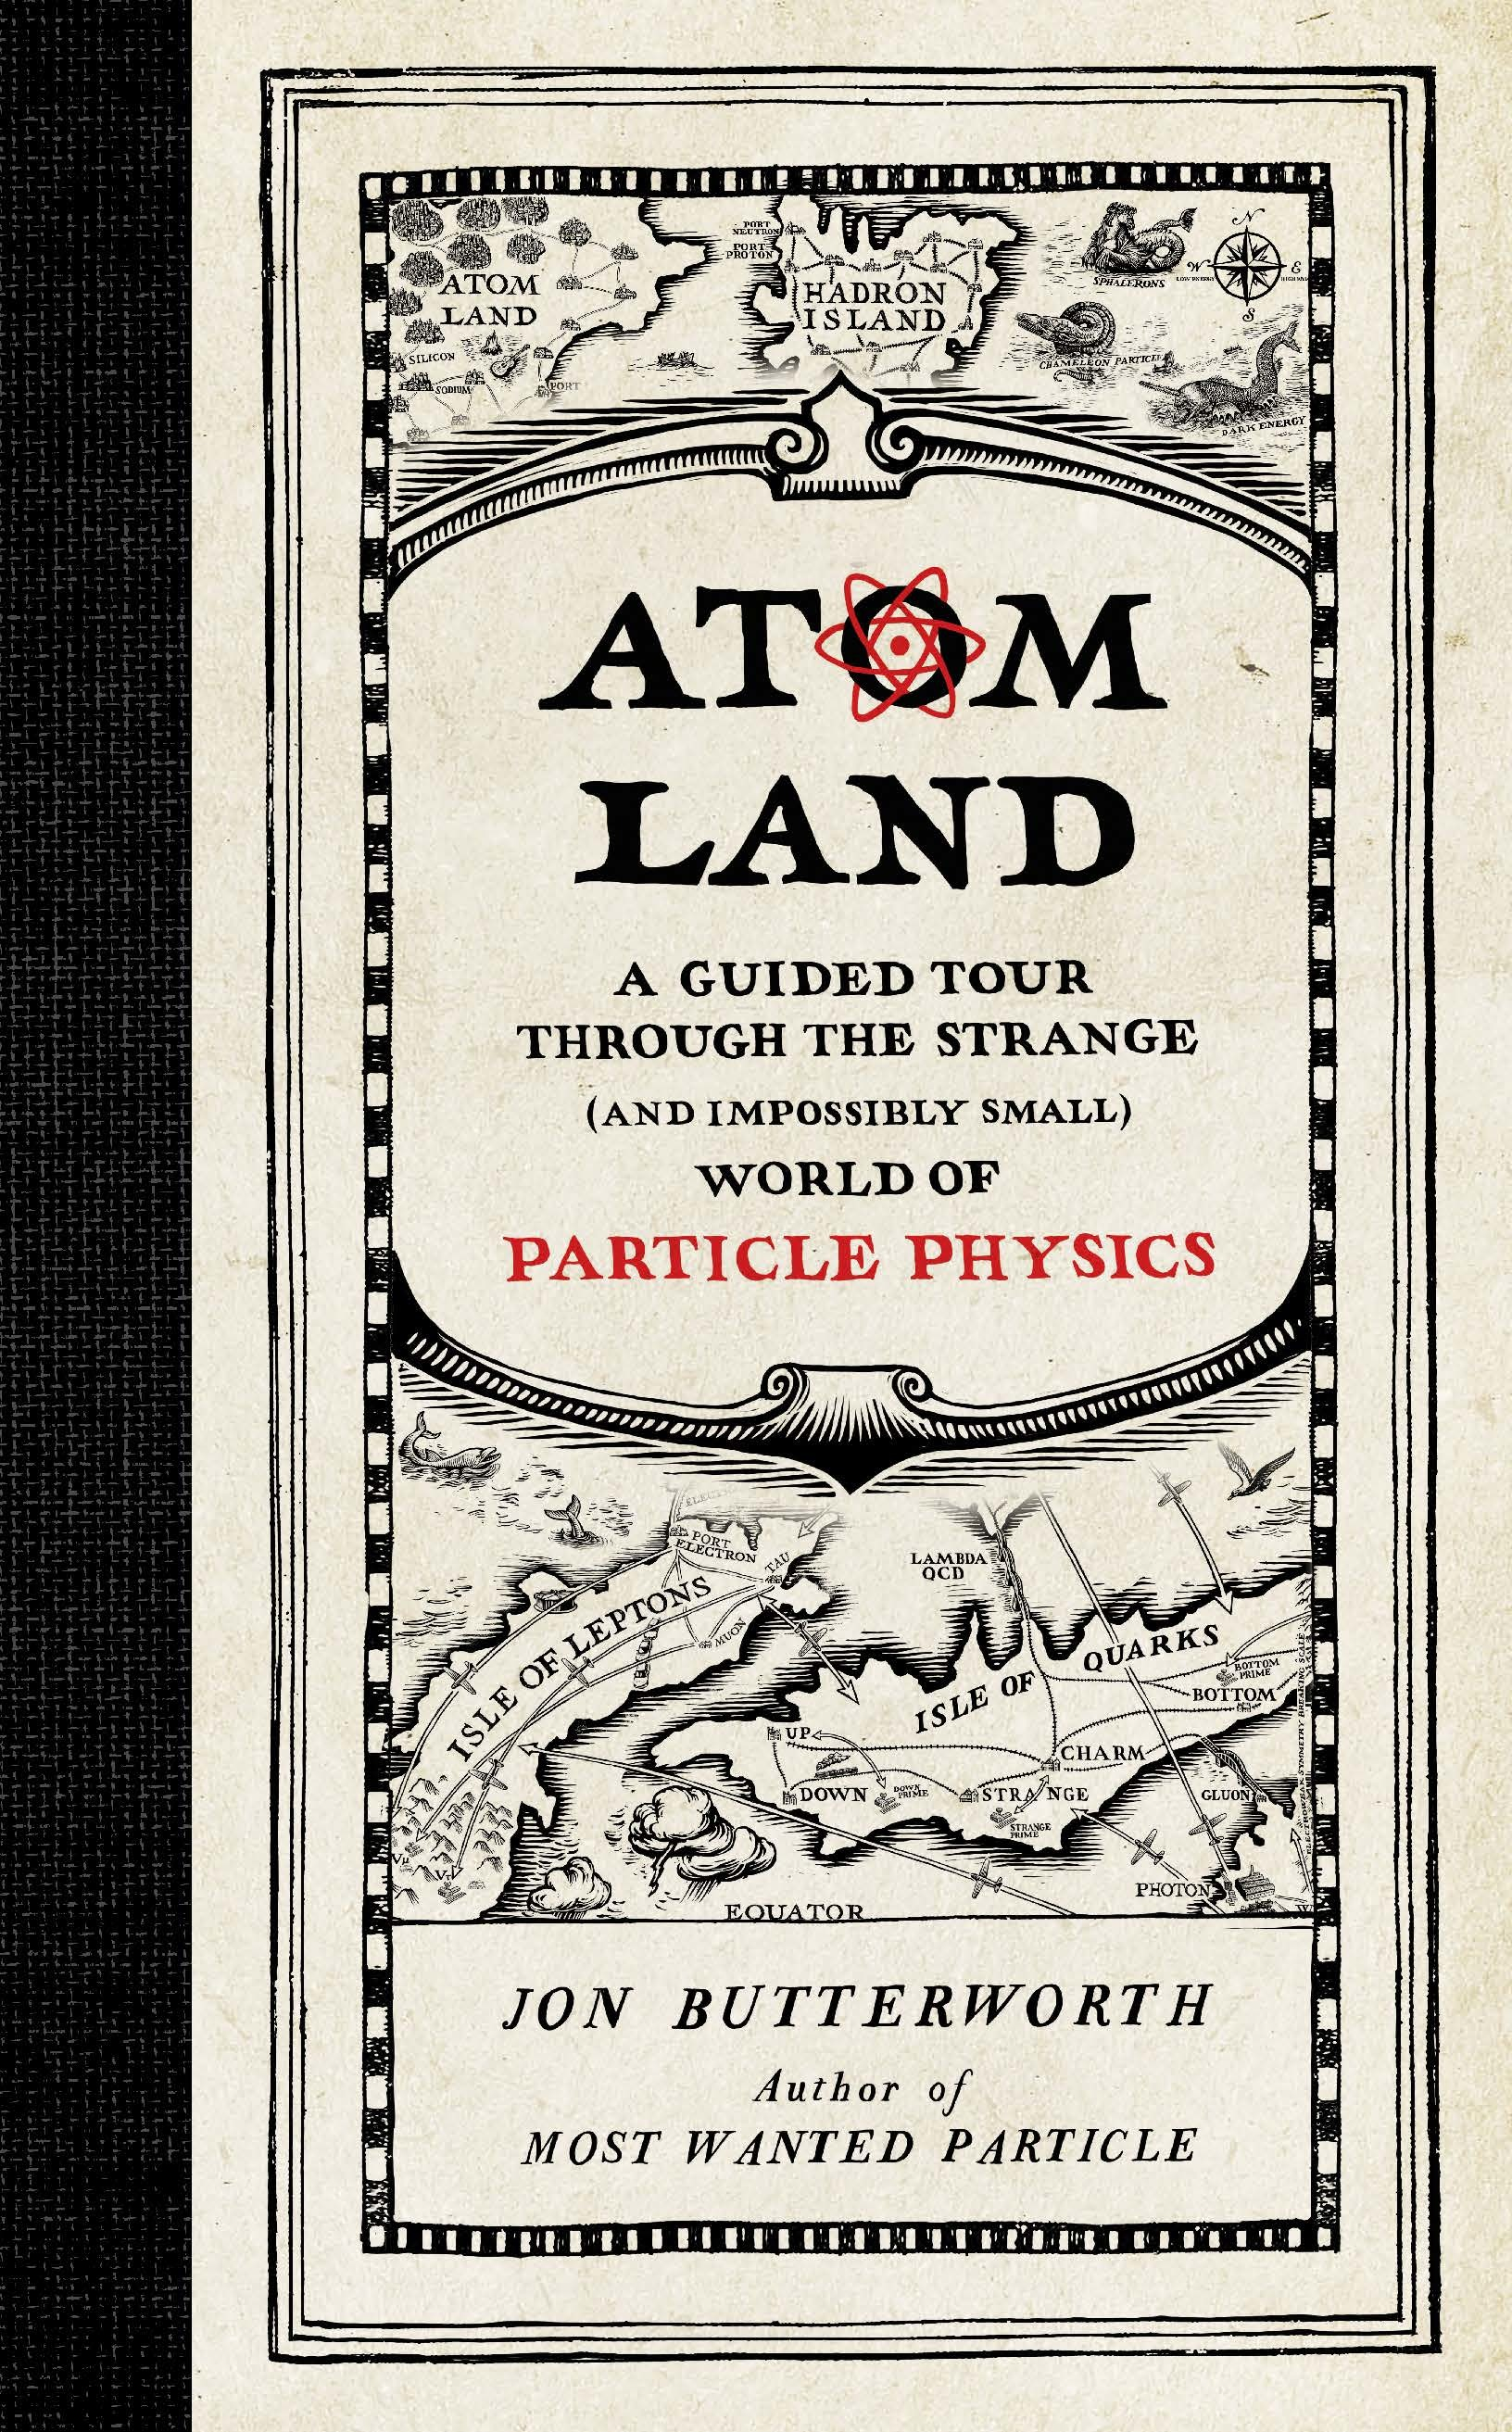 Atom Land A Guided Tour Through the Strange (and Impossibly Small) World of Particle Physics